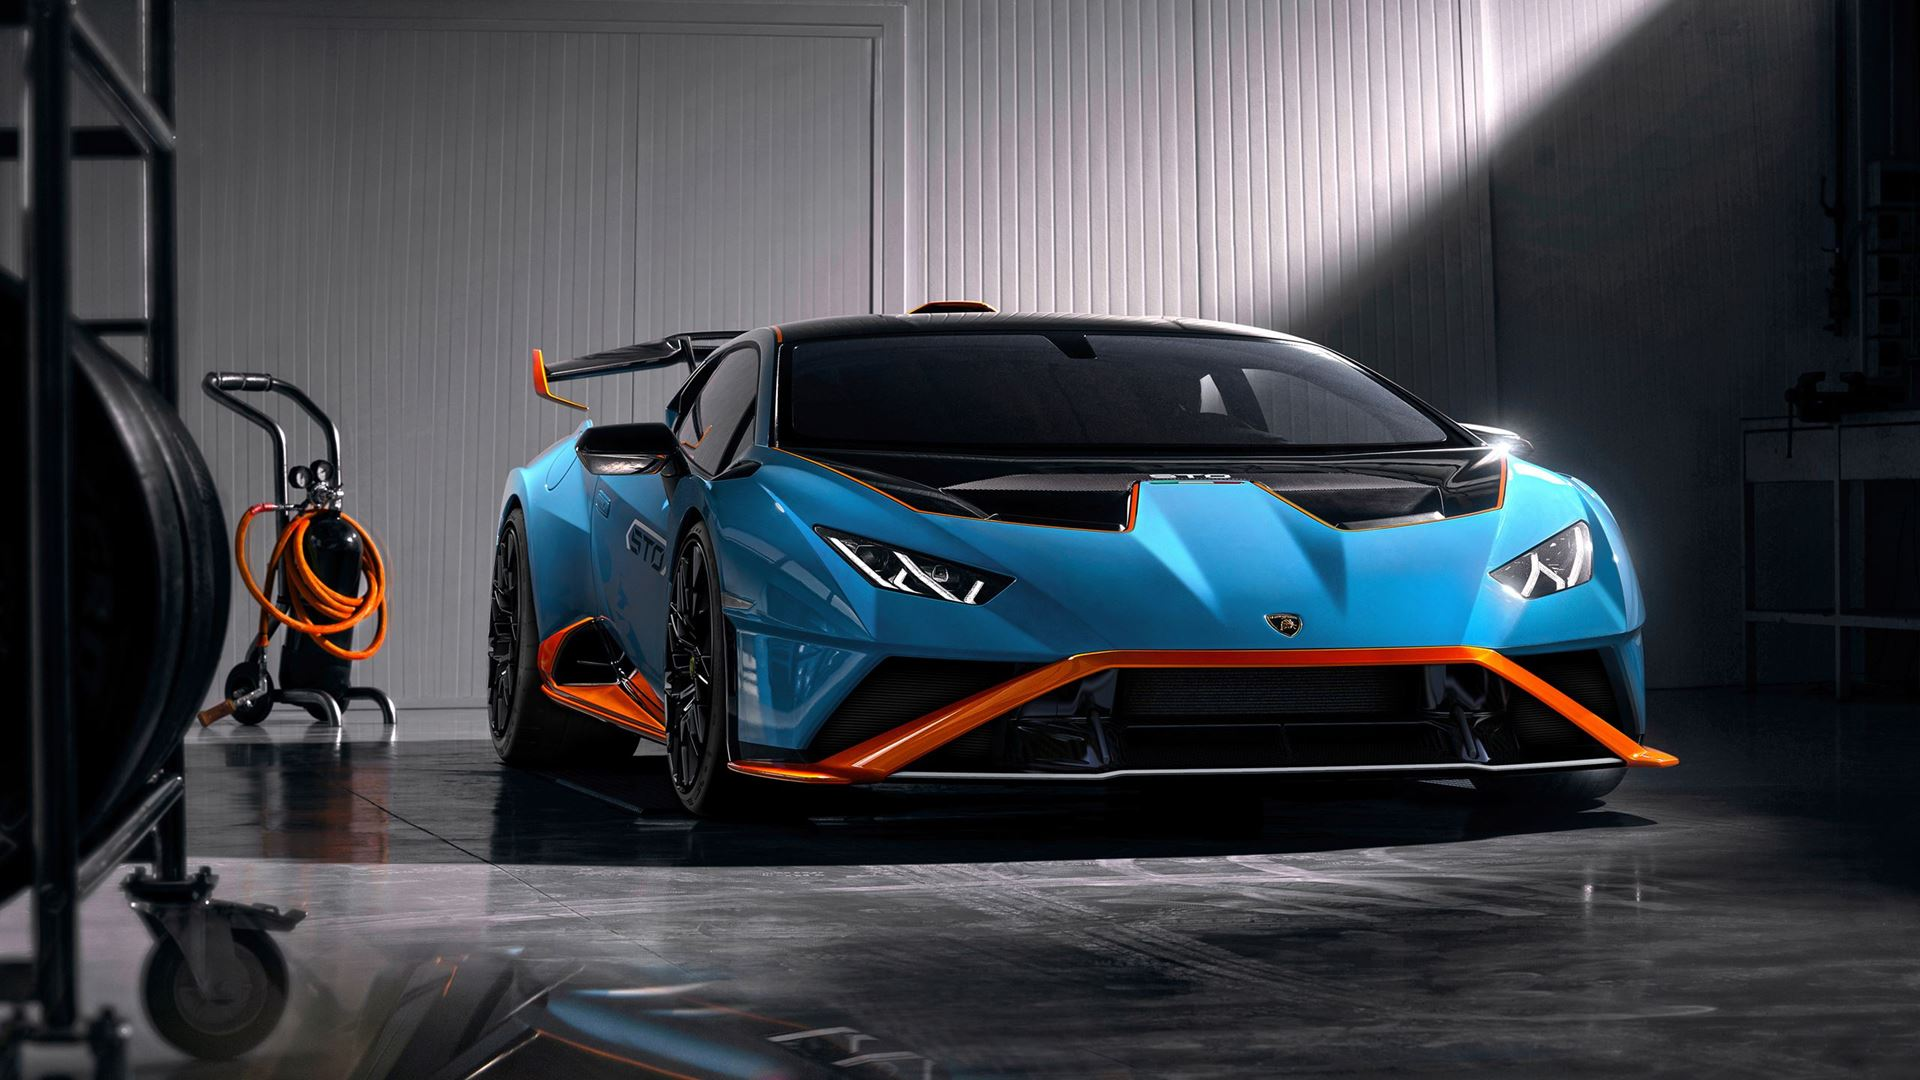 Racetrack to road: the new Lamborghini Huracán STO - Image 7